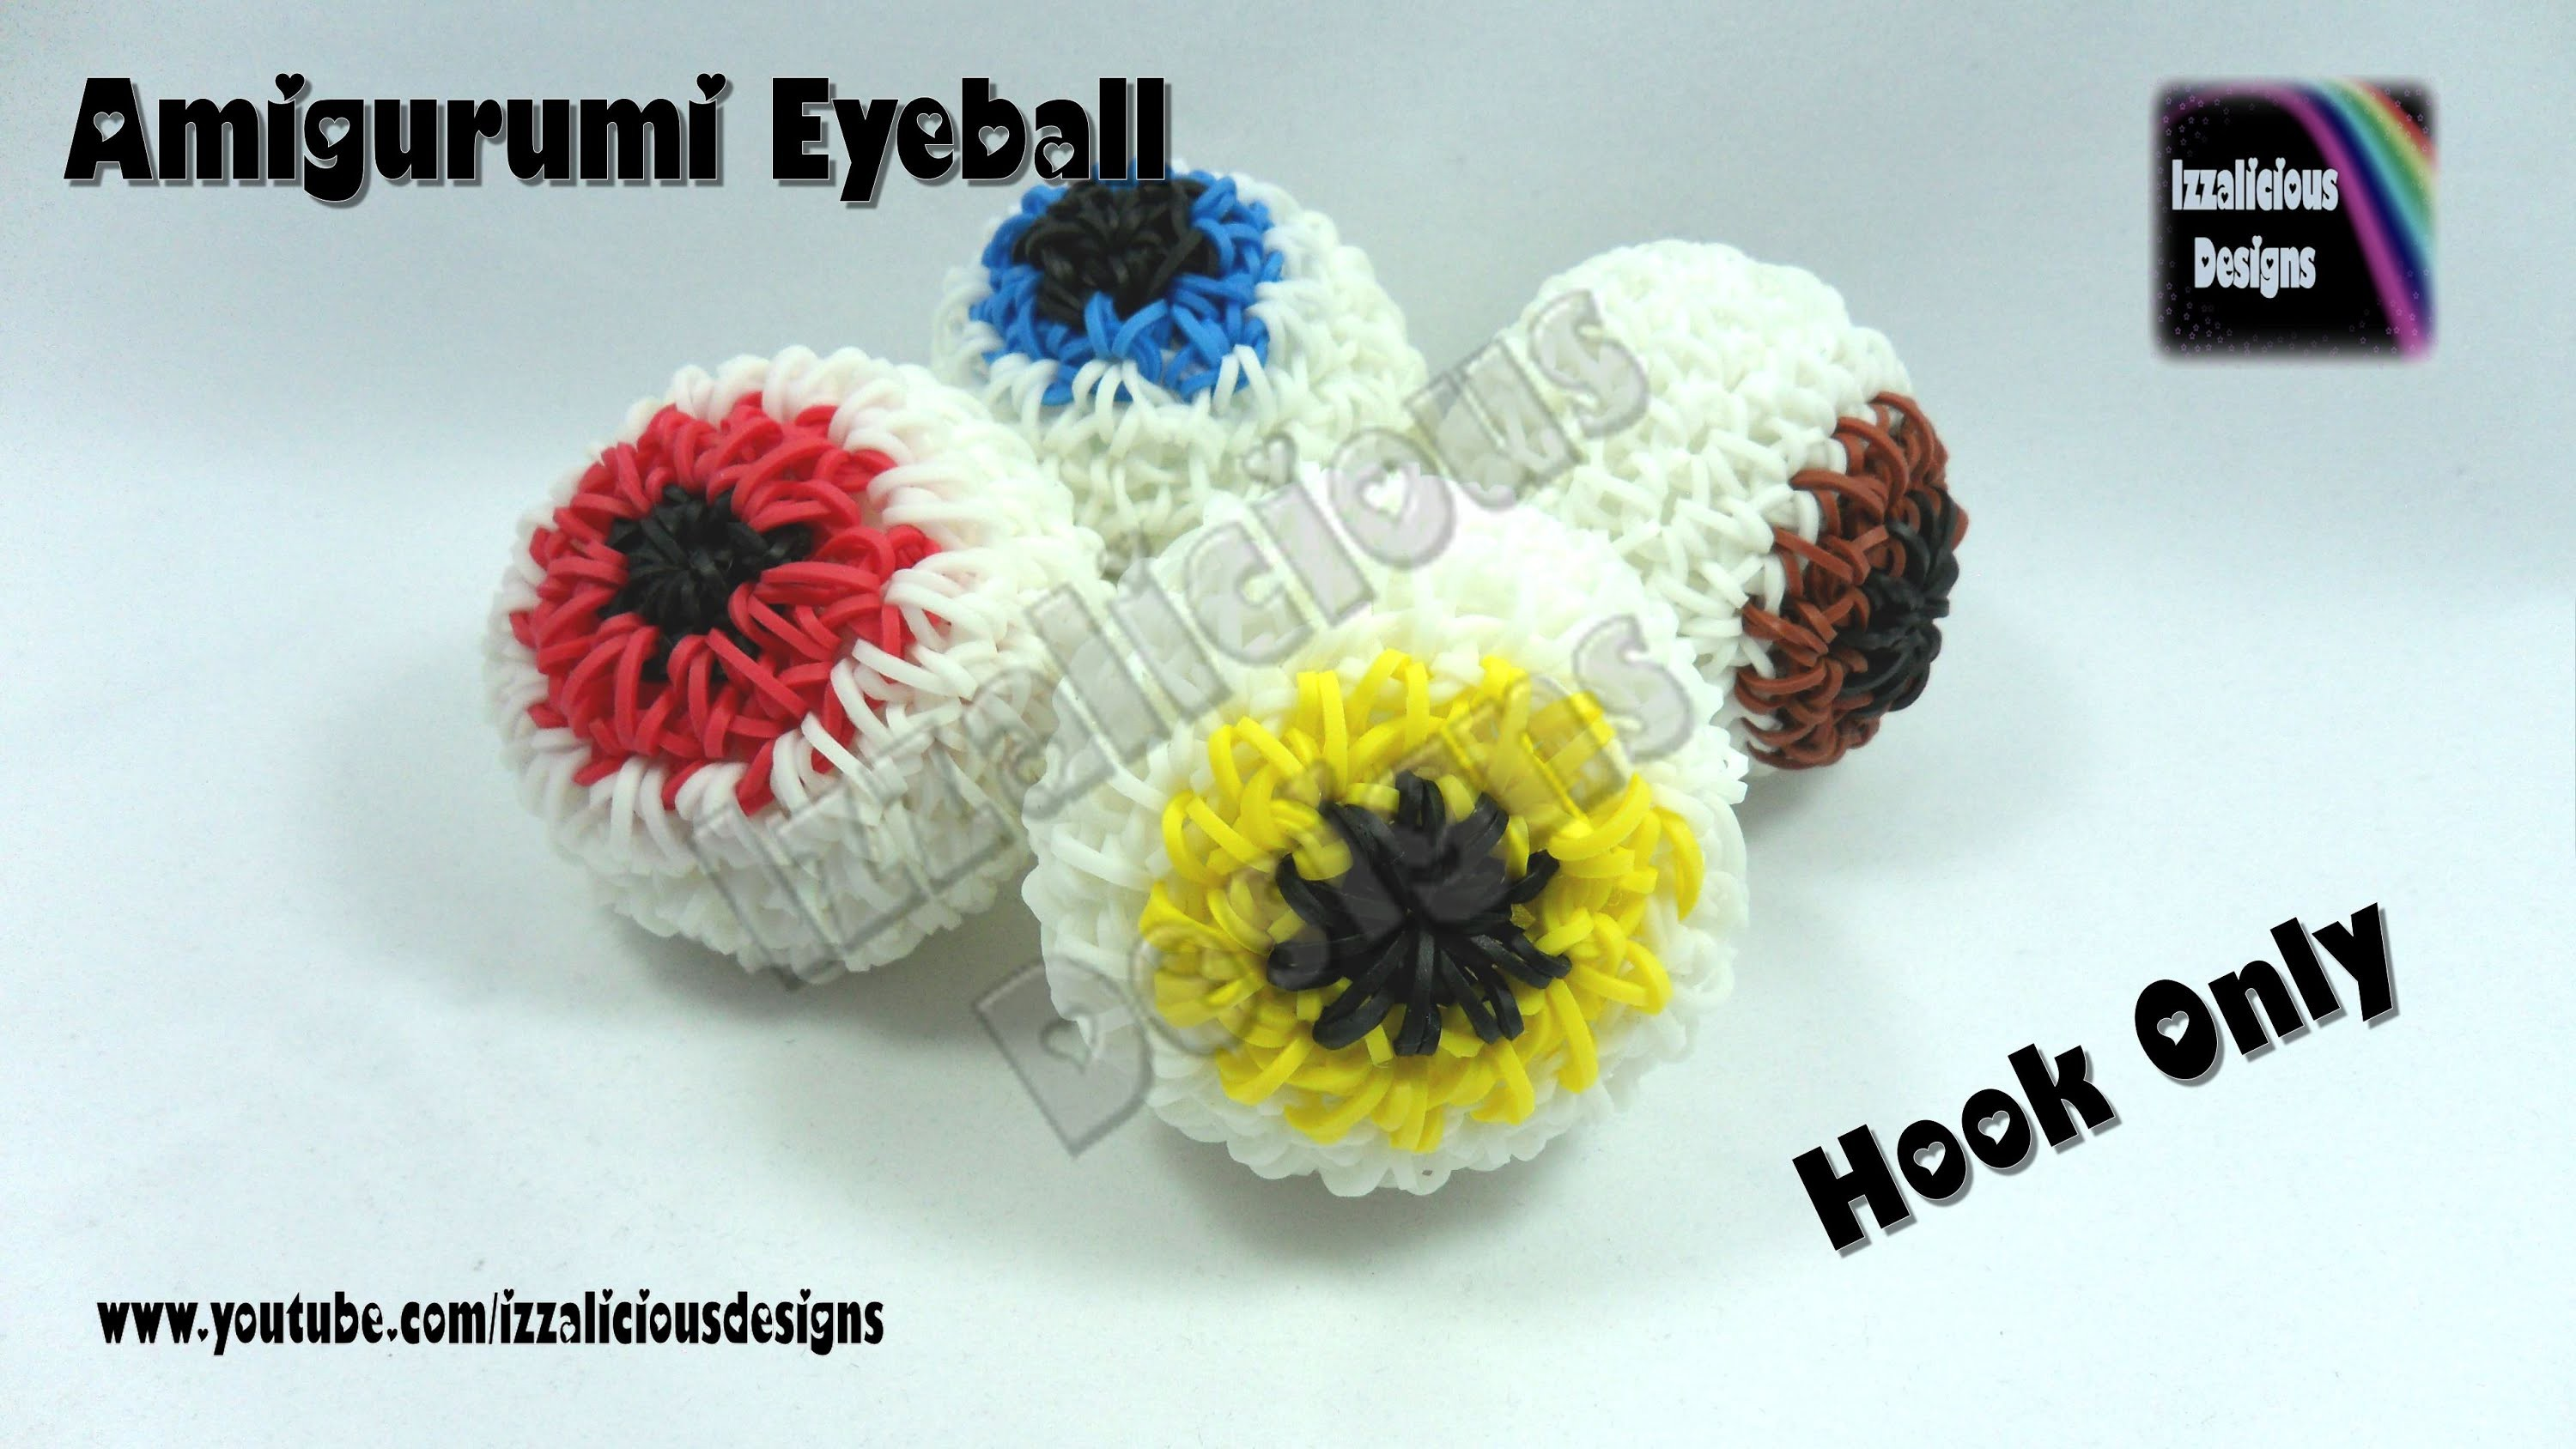 Rainbow Loom (Halloween) Amigurumi Crochet 3D Eyeball Charm  - Loom-less.Hook only